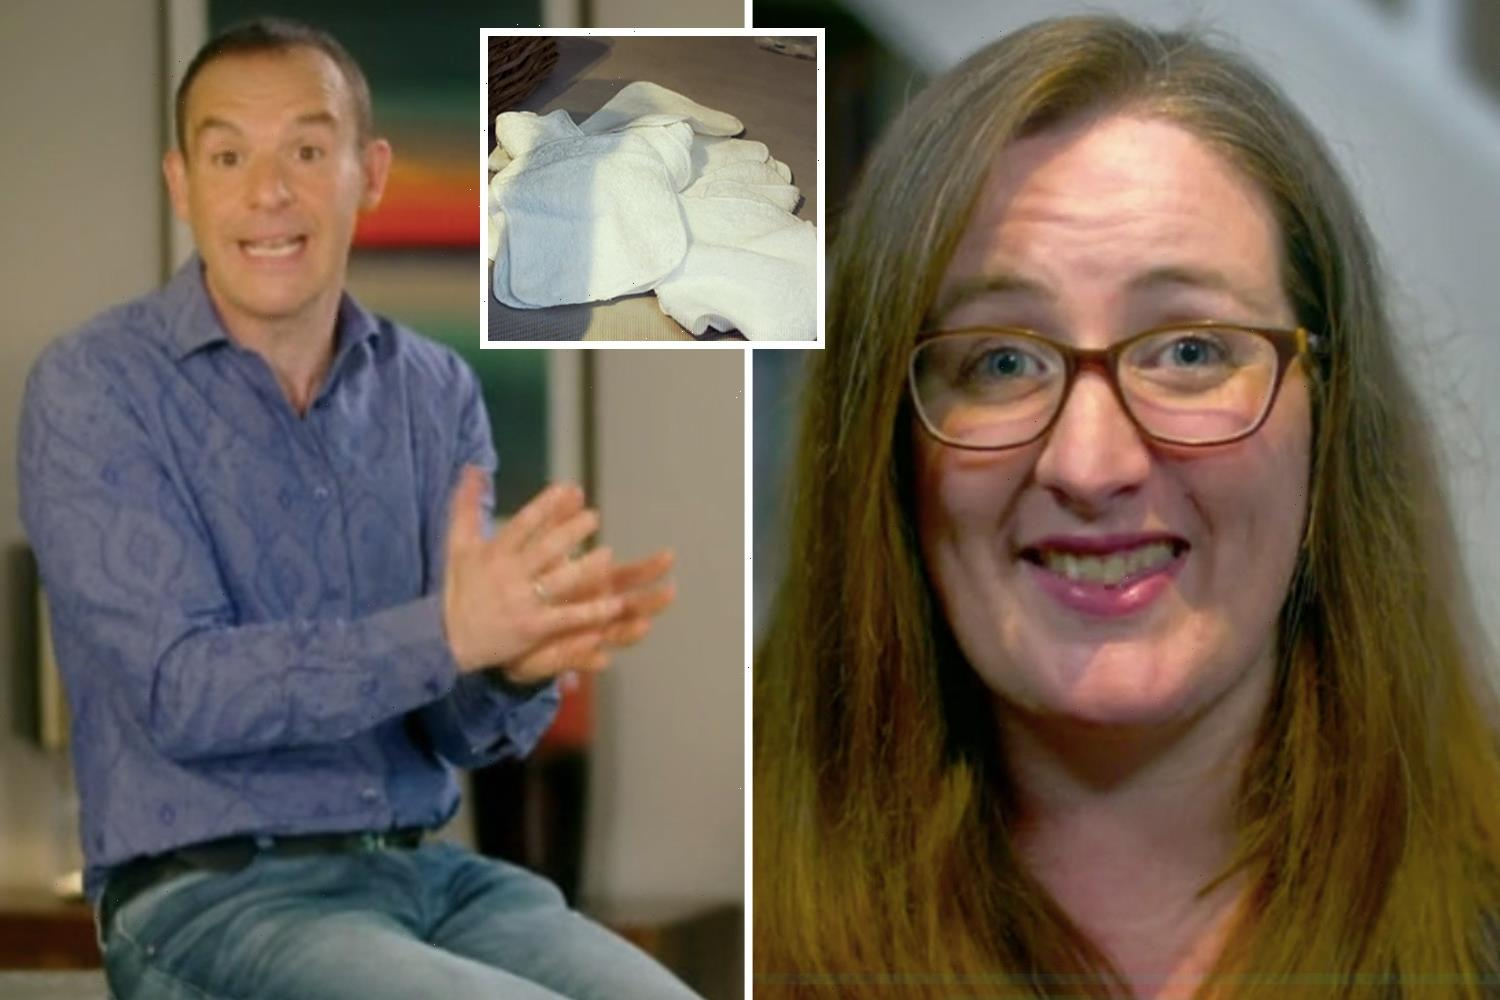 Martin Lewis: Extreme Savers viewers disgusted by woman's 'reusable' toilet paper hack